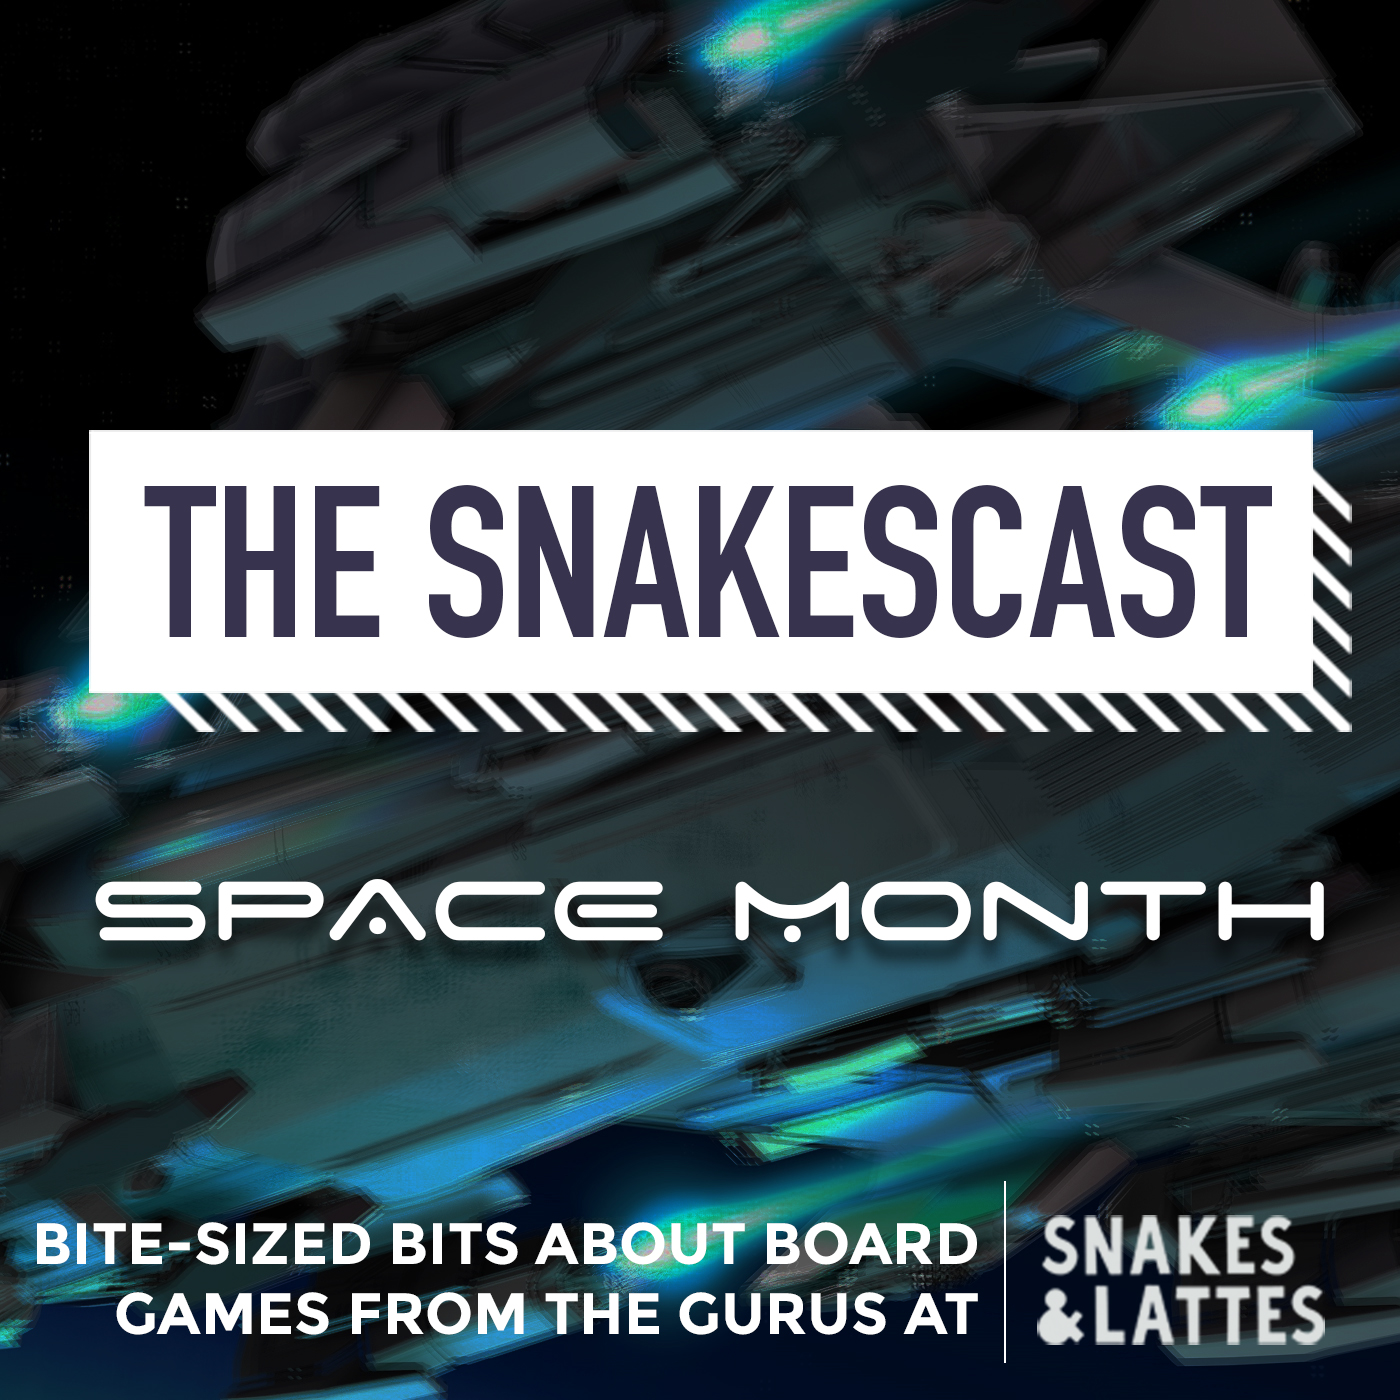 Space Month: Galactic Conquest, Part 2 - War or diplomacy?